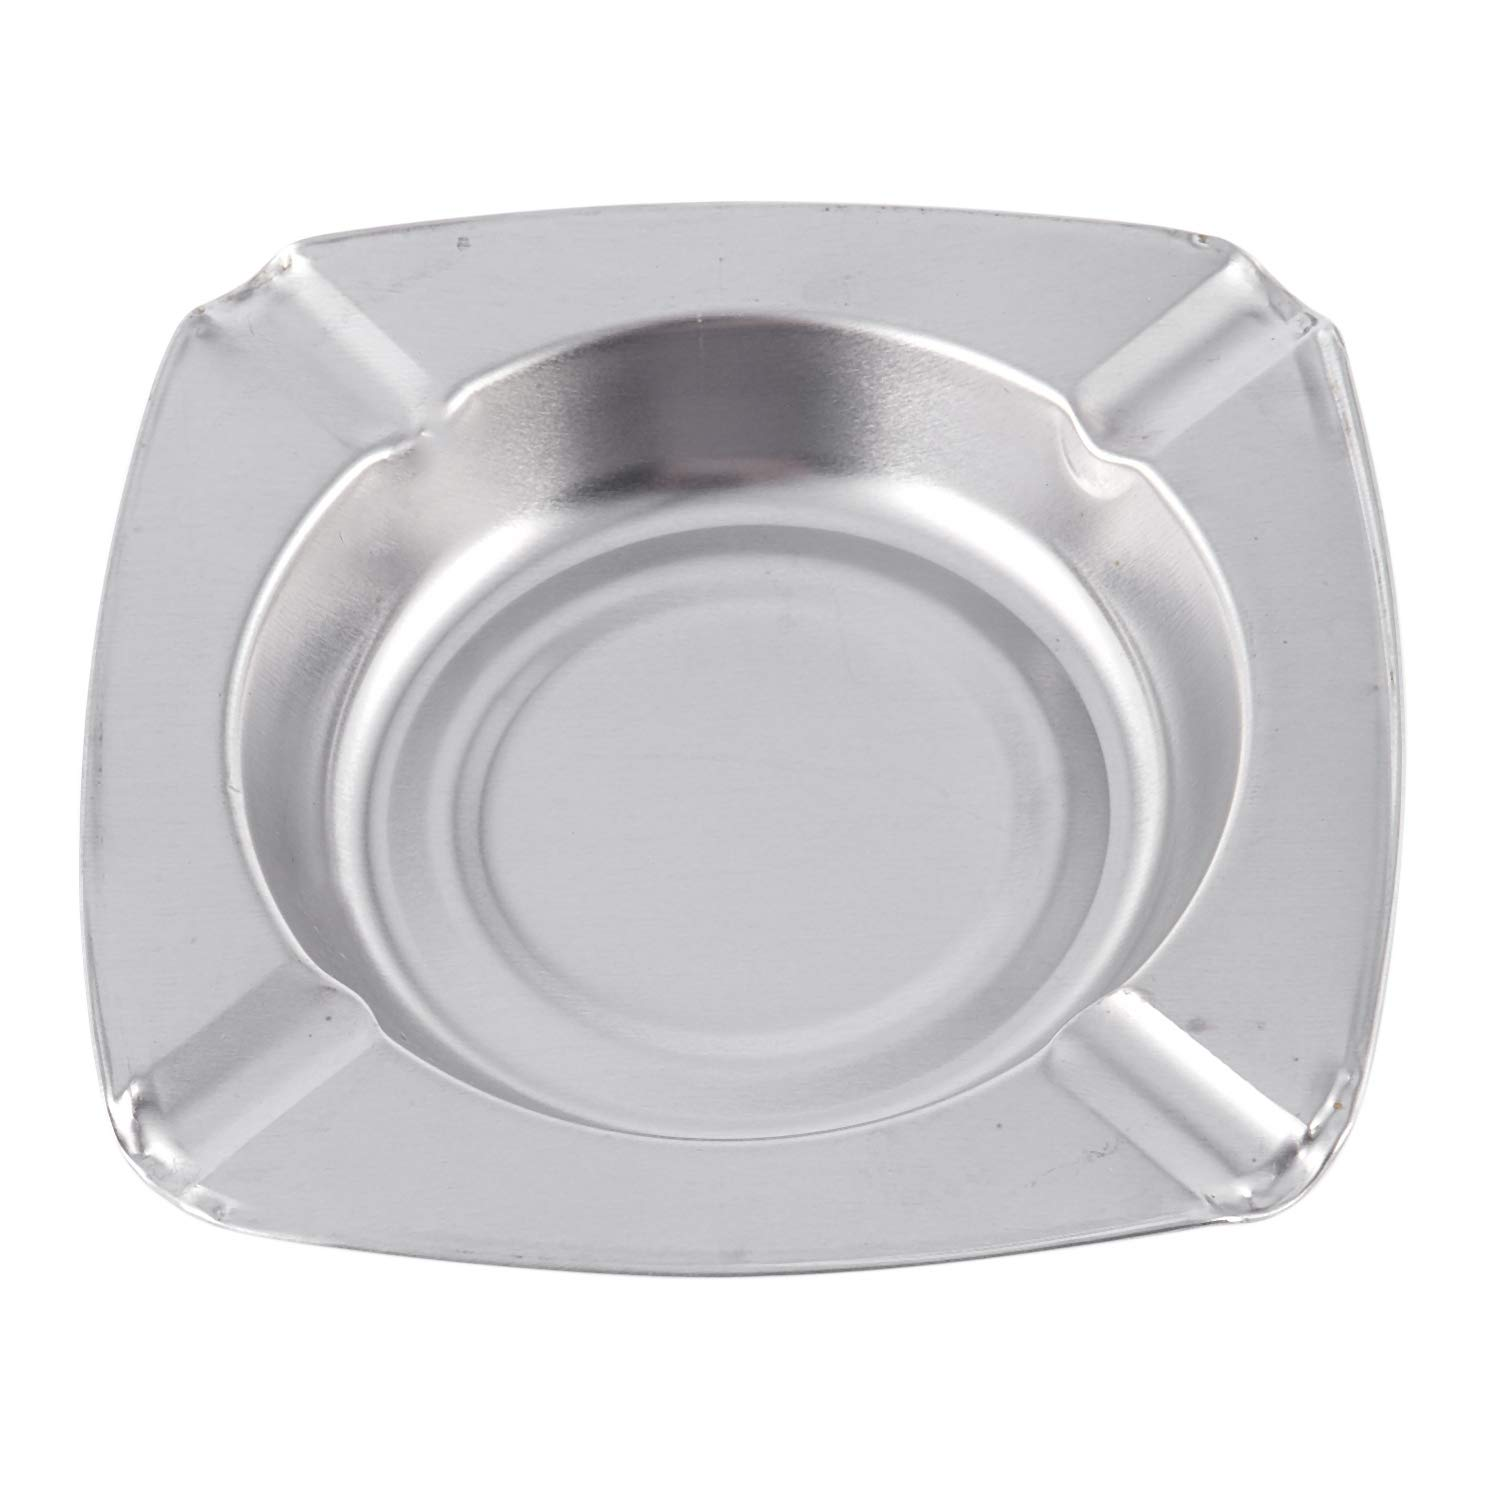 Xigeapg Stainless Steel Ashtray 124mm.